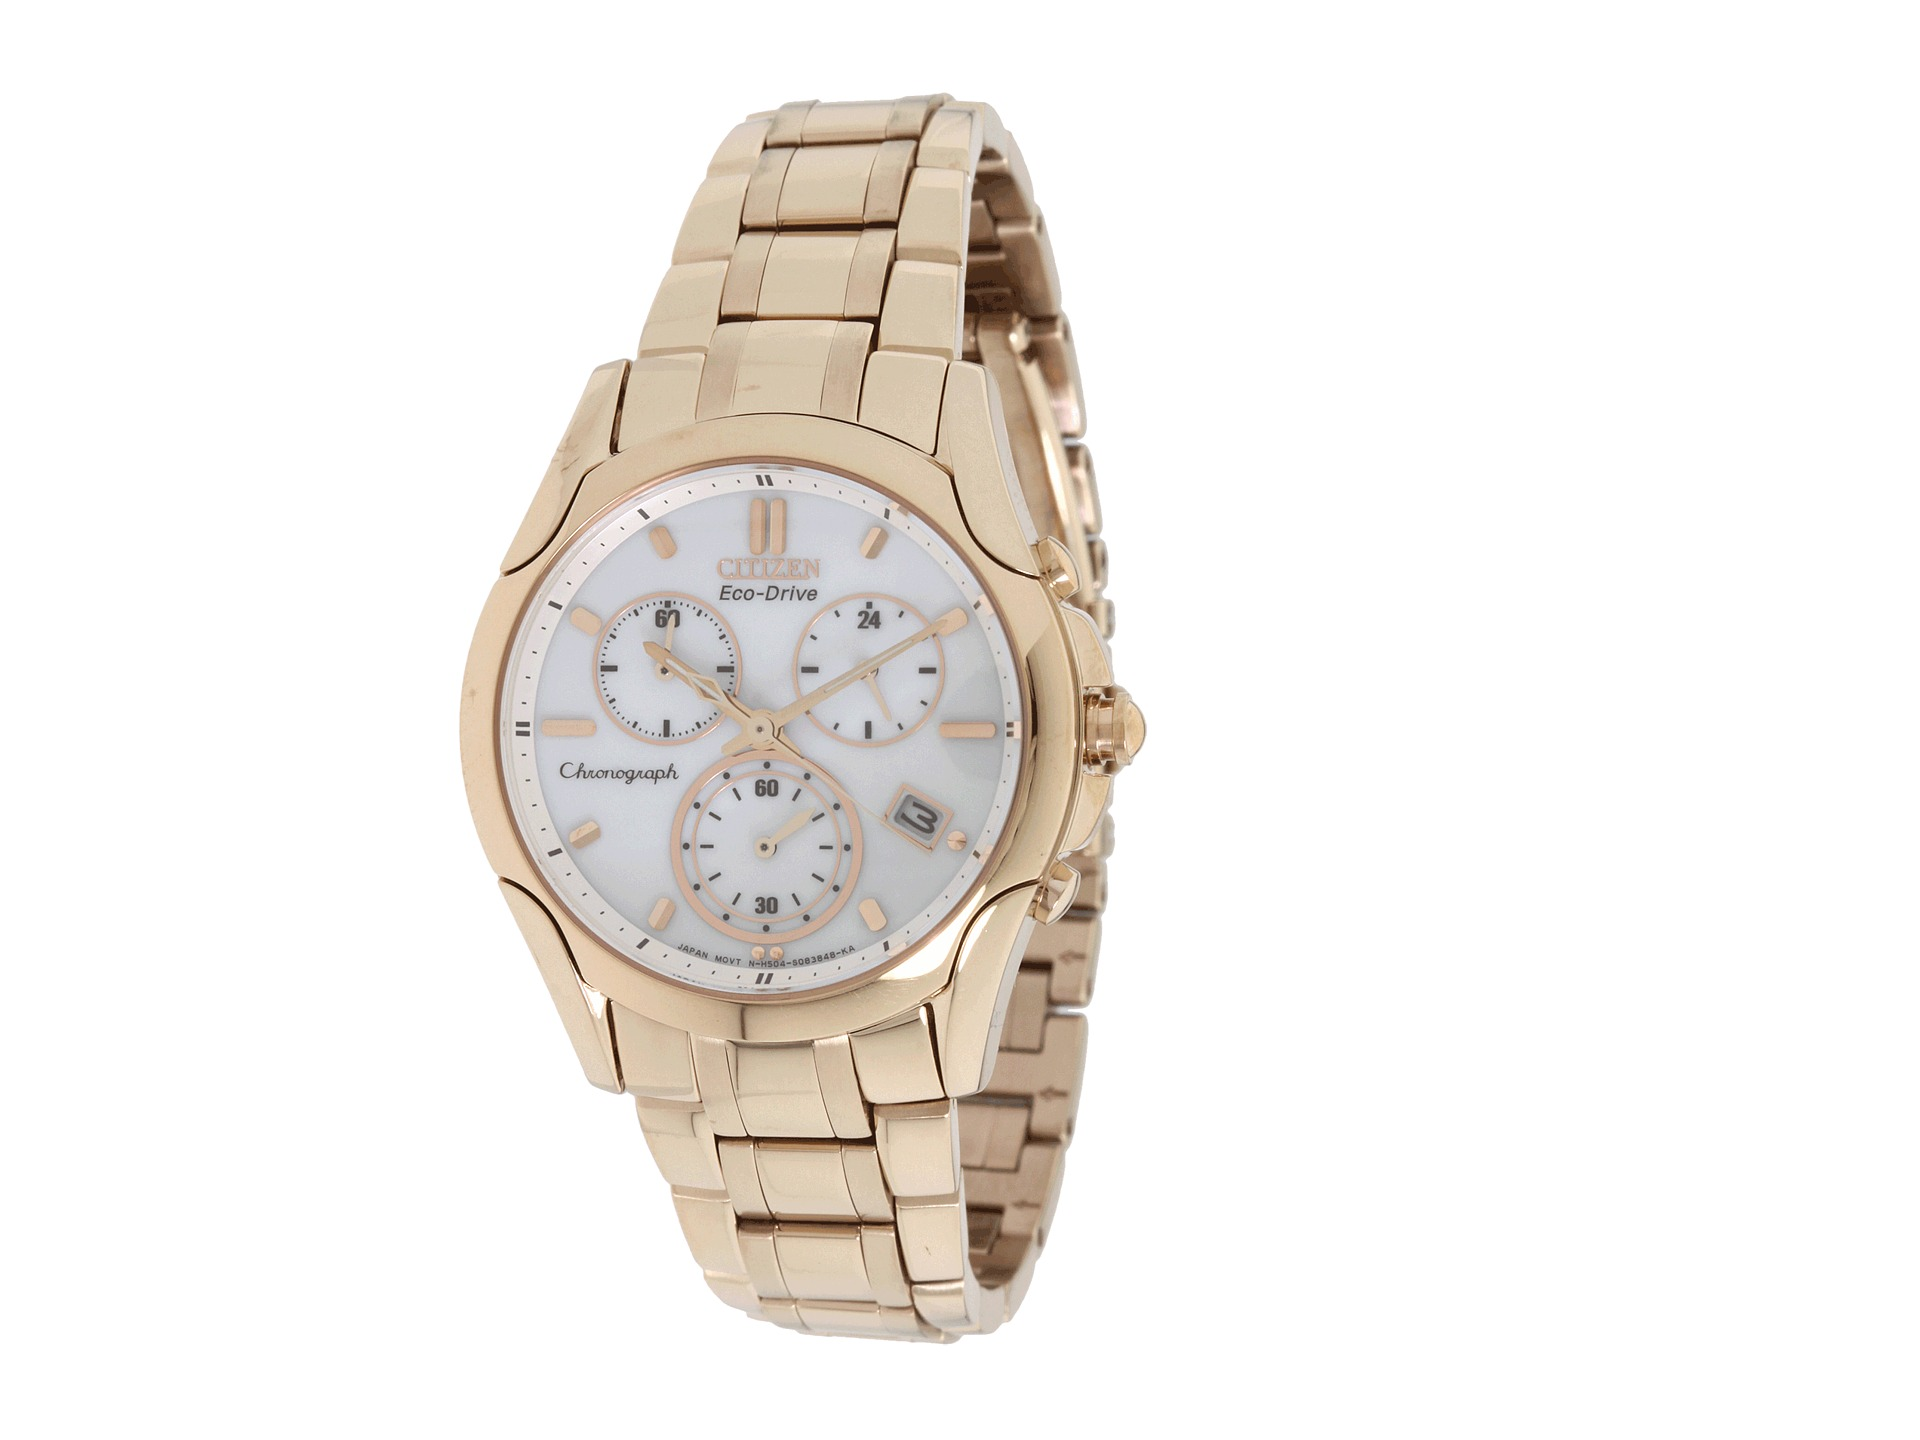 citizen watches fb1153 59a eco drive gold tone